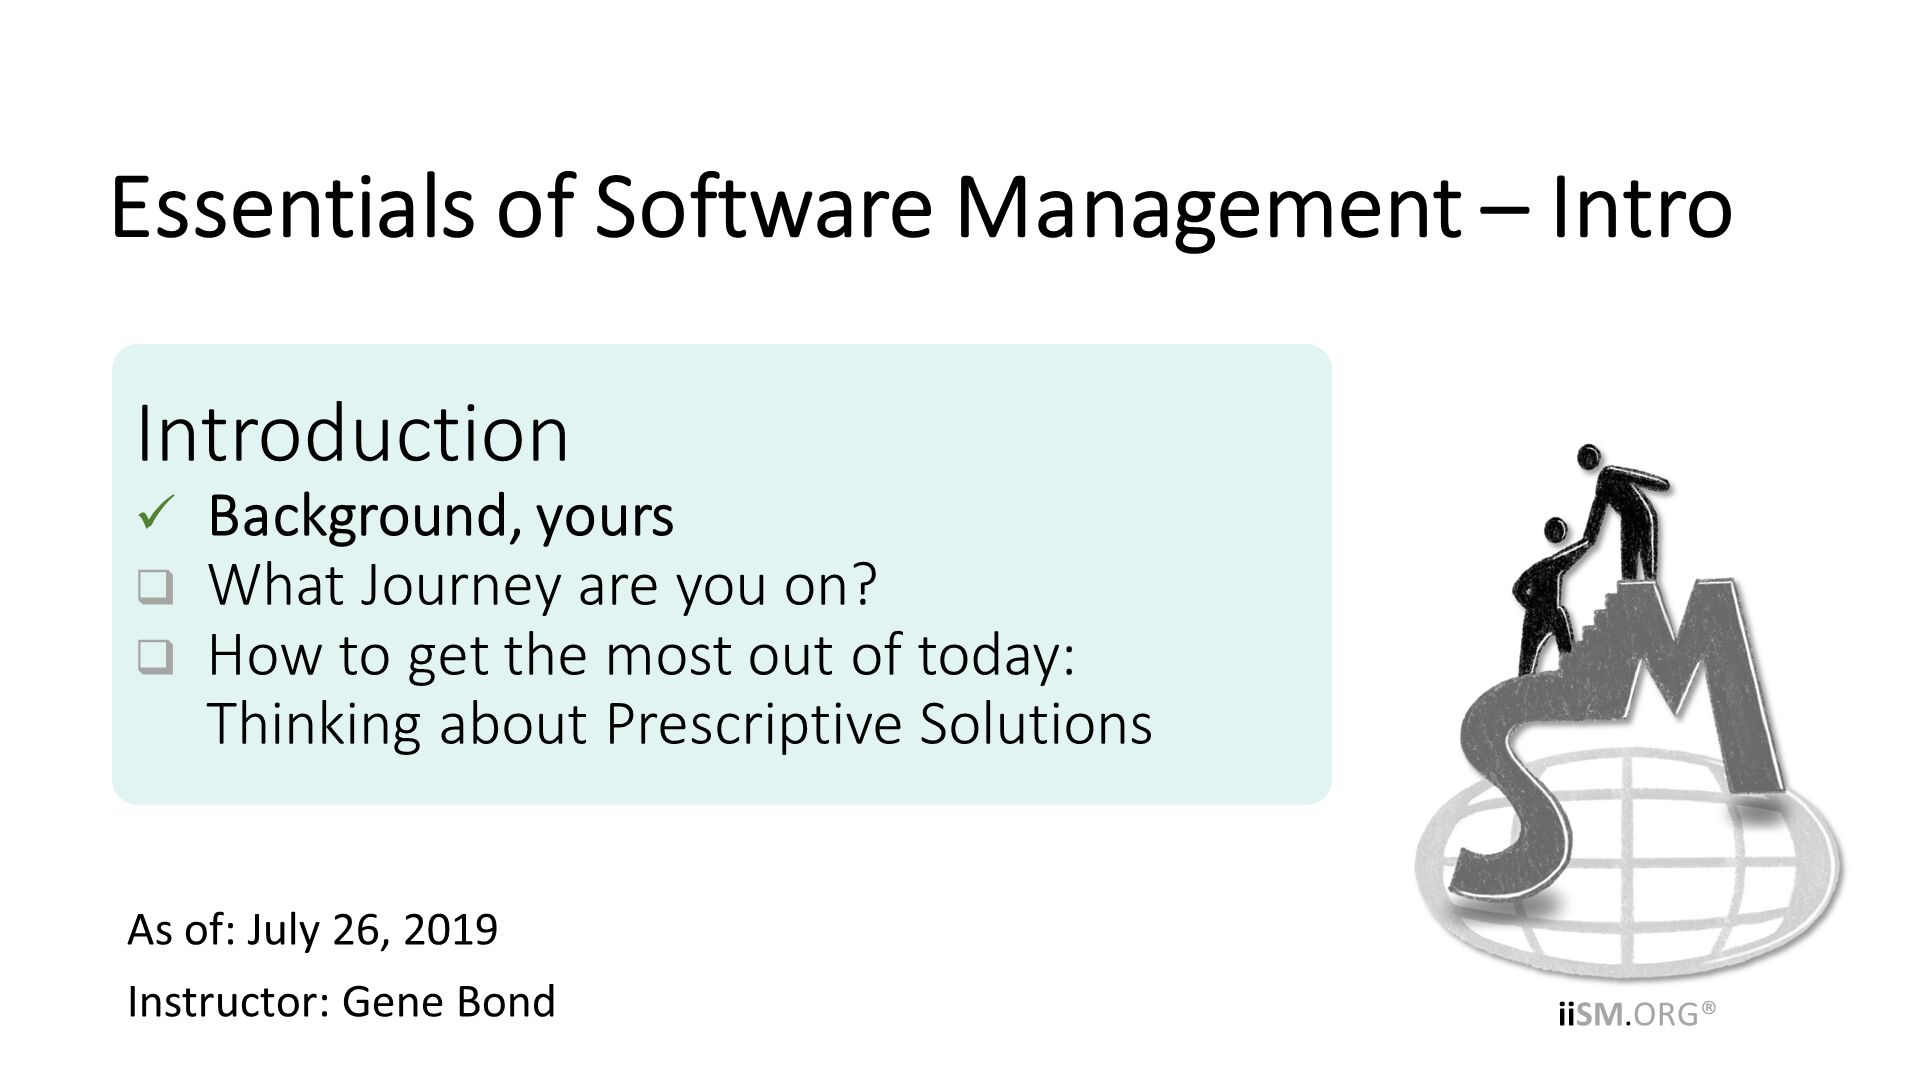 As of: July 26, 2019 Instructor: Gene Bond . Introduction Background, yours What Journey are you on? How to get the most out of today:Thinking about Prescriptive Solutions. Essentials of Software Management – Intro.